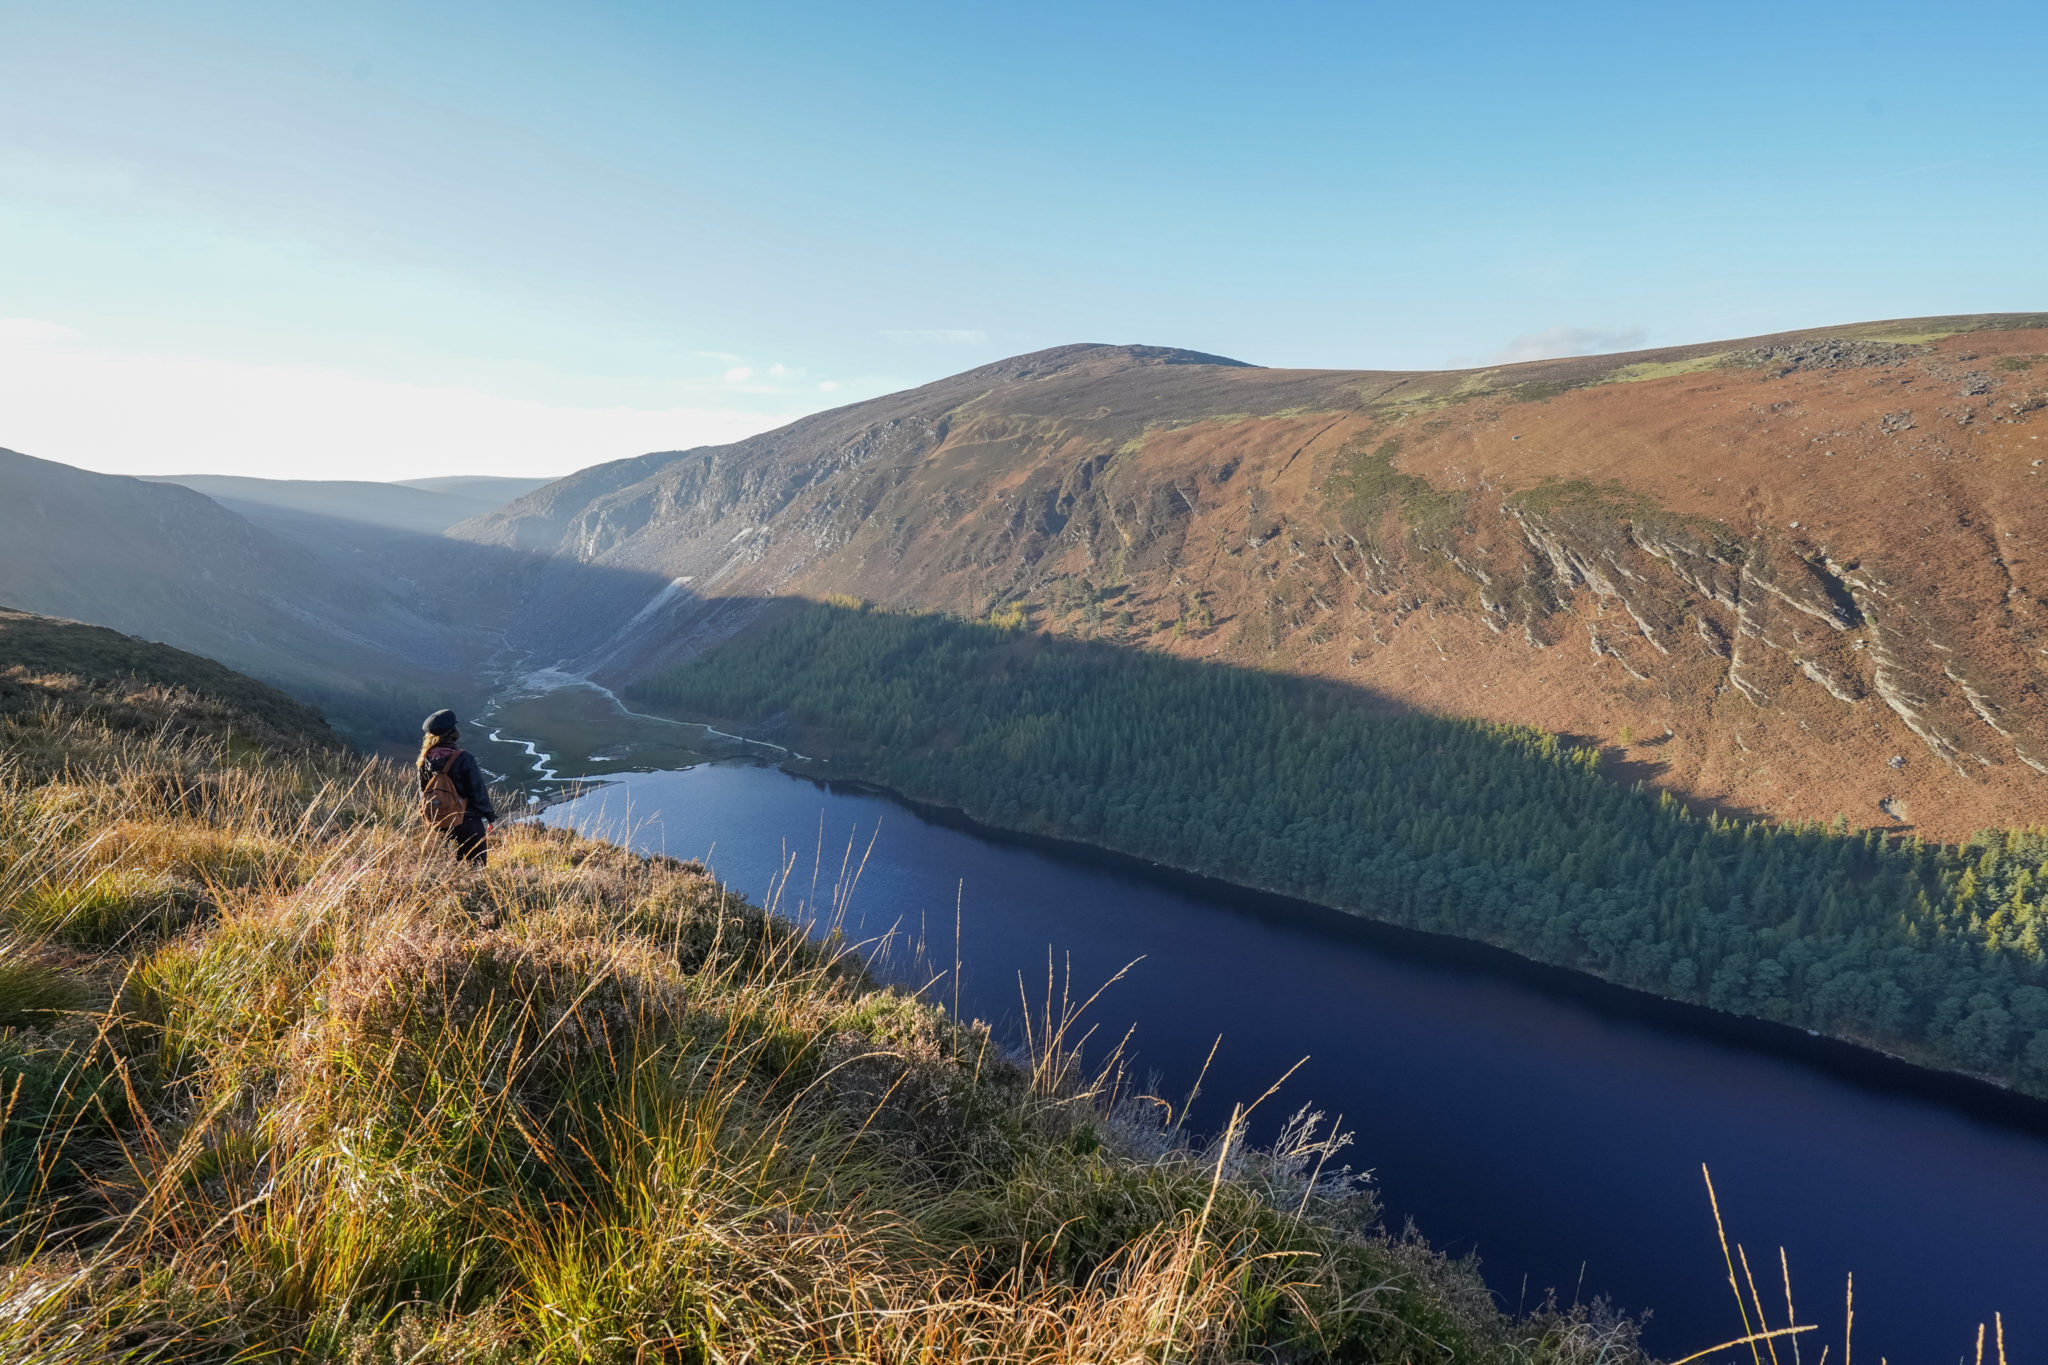 wicklow-mountains-irlande-dublin-randonnée